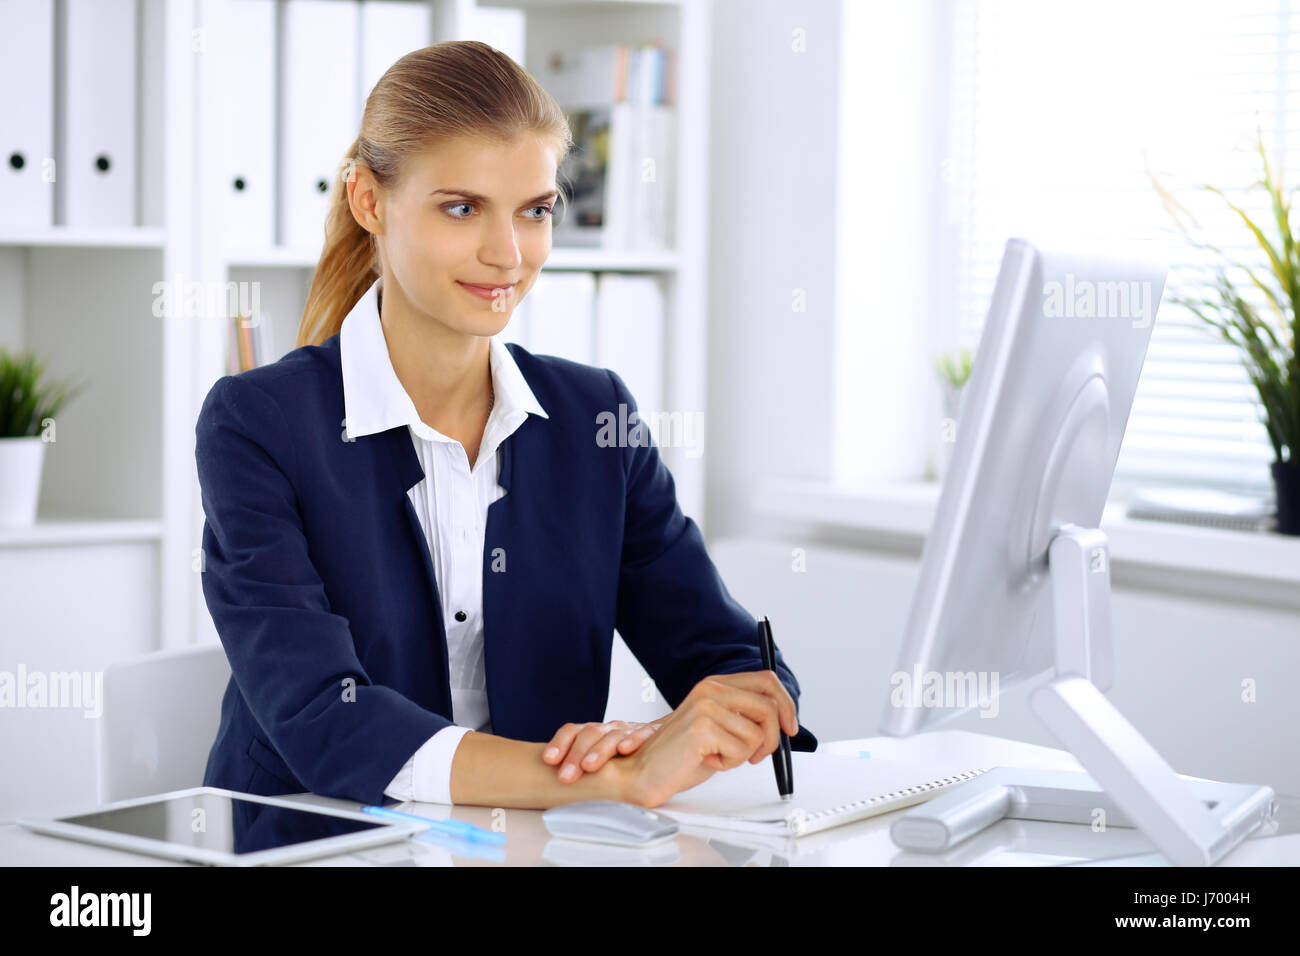 Modern business woman in the office - Stock Image